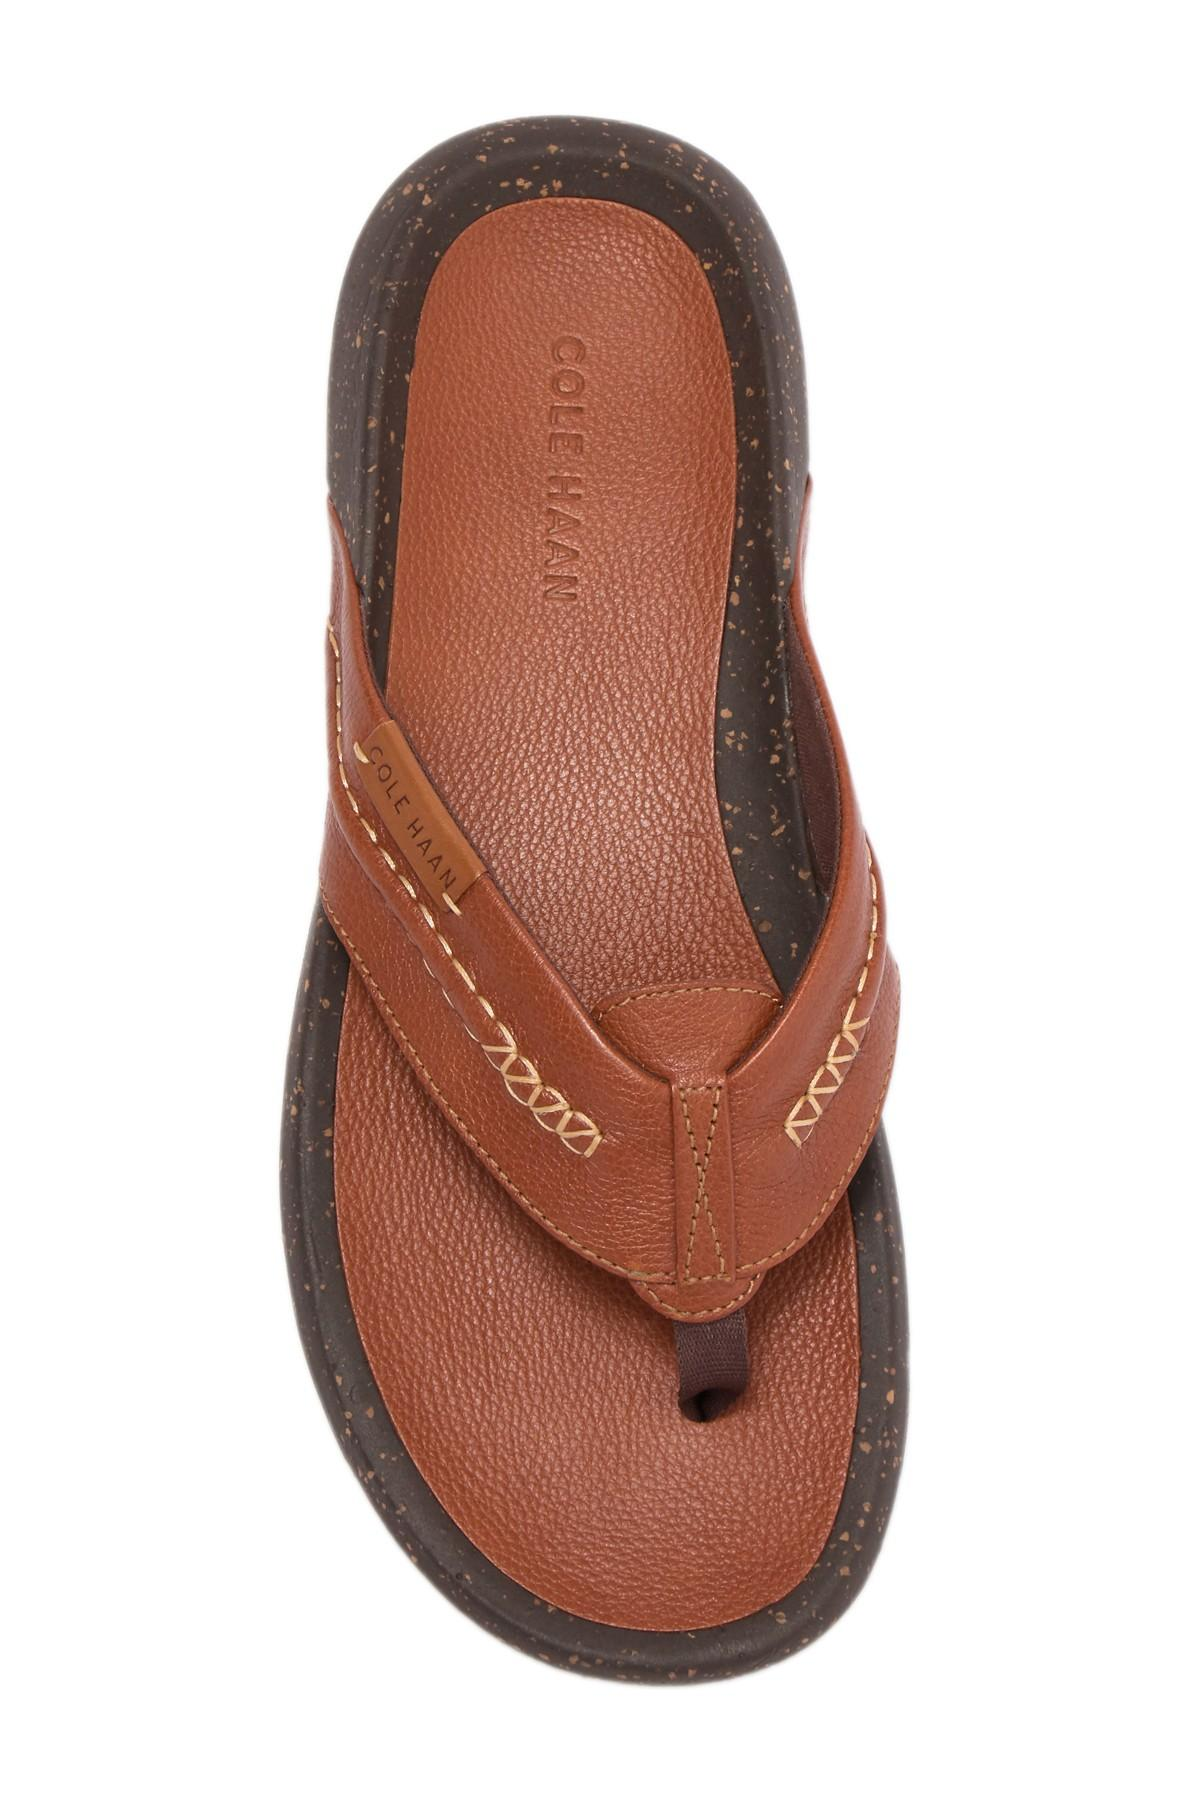 62a41095ef Cole Haan Brady Thong Sandal for Men - Lyst